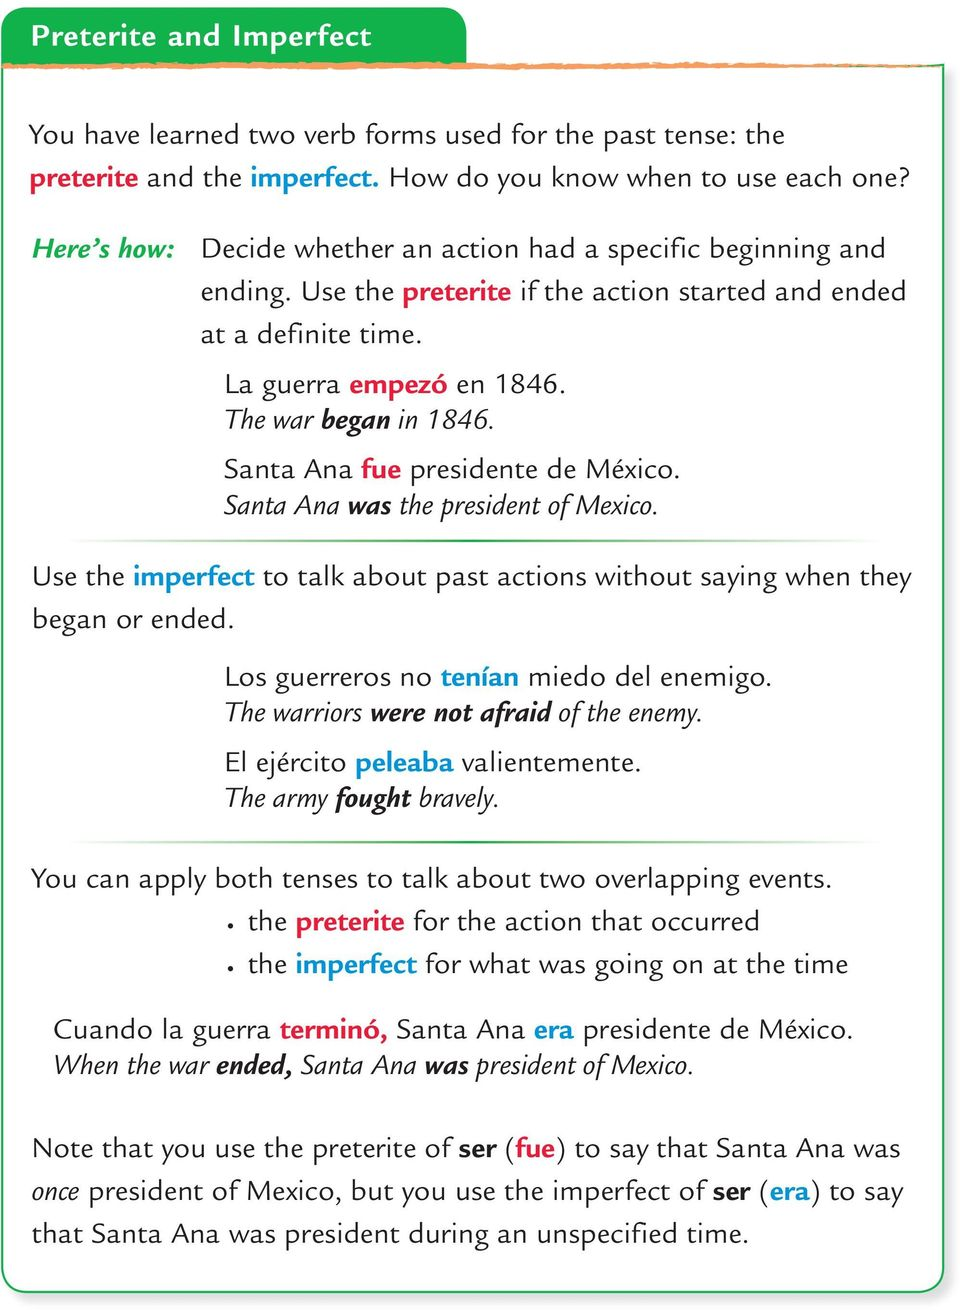 Santa Ana fue presidente de México. Santa Ana was the president of Mexico. Use the imperfect to talk about past actions without saying when they began or ended.